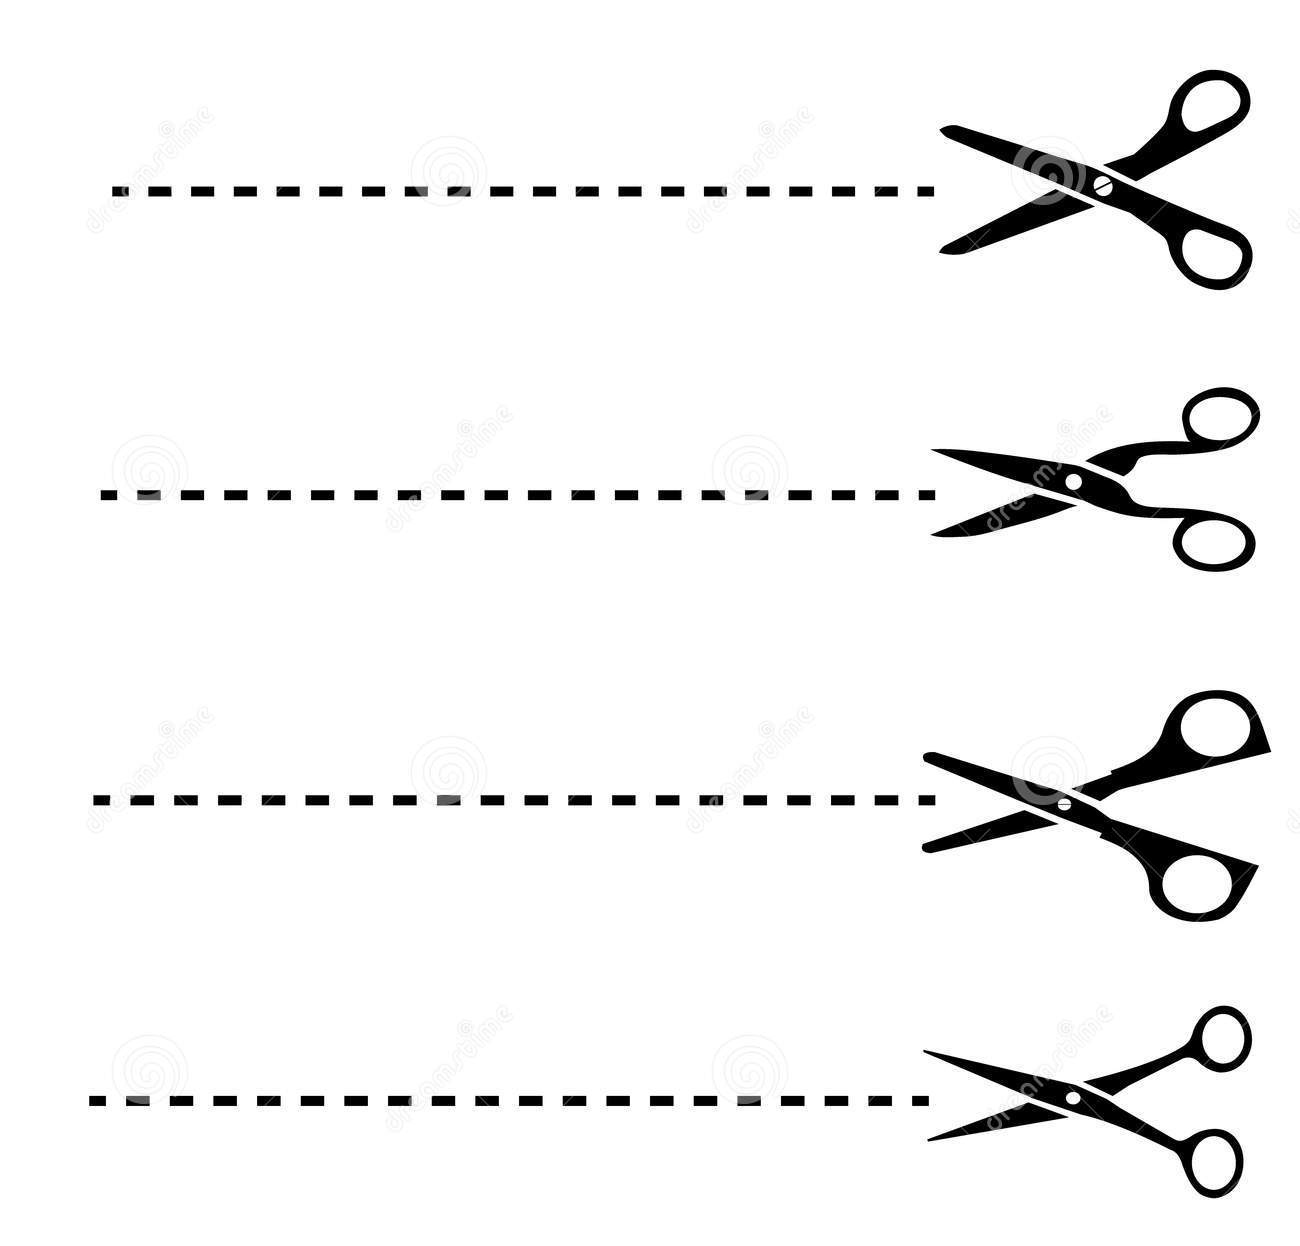 Drawing Stitched Dashed Or Dotted Lines